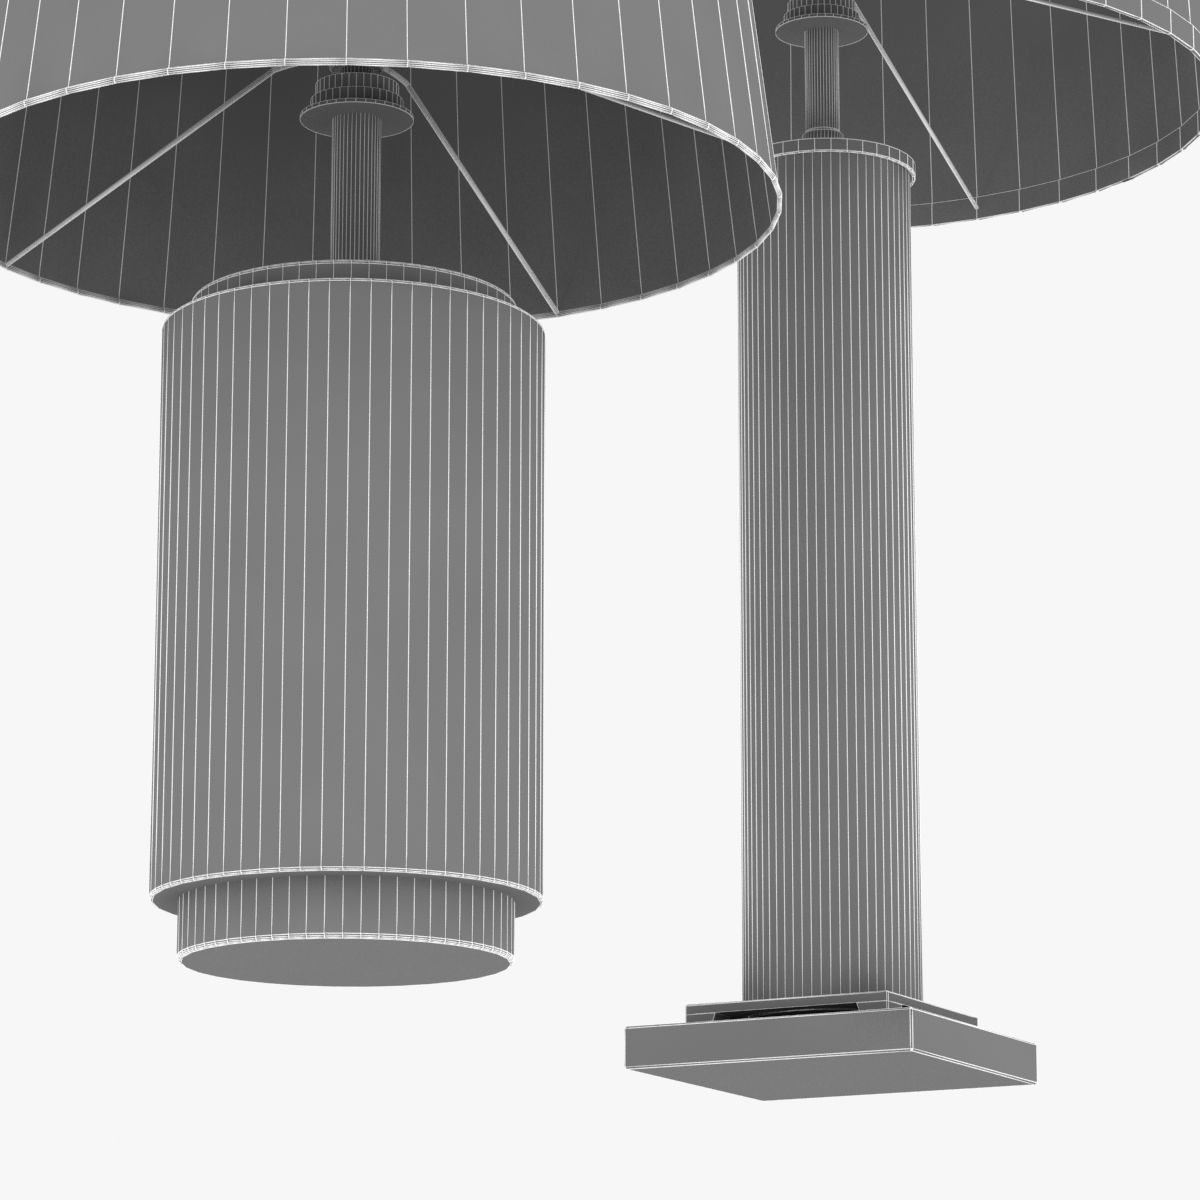 Charming ... Restoration Hardware French Column Glass Table Lamp 3d Model Max Obj  3ds Fbx Mtl 7 ...